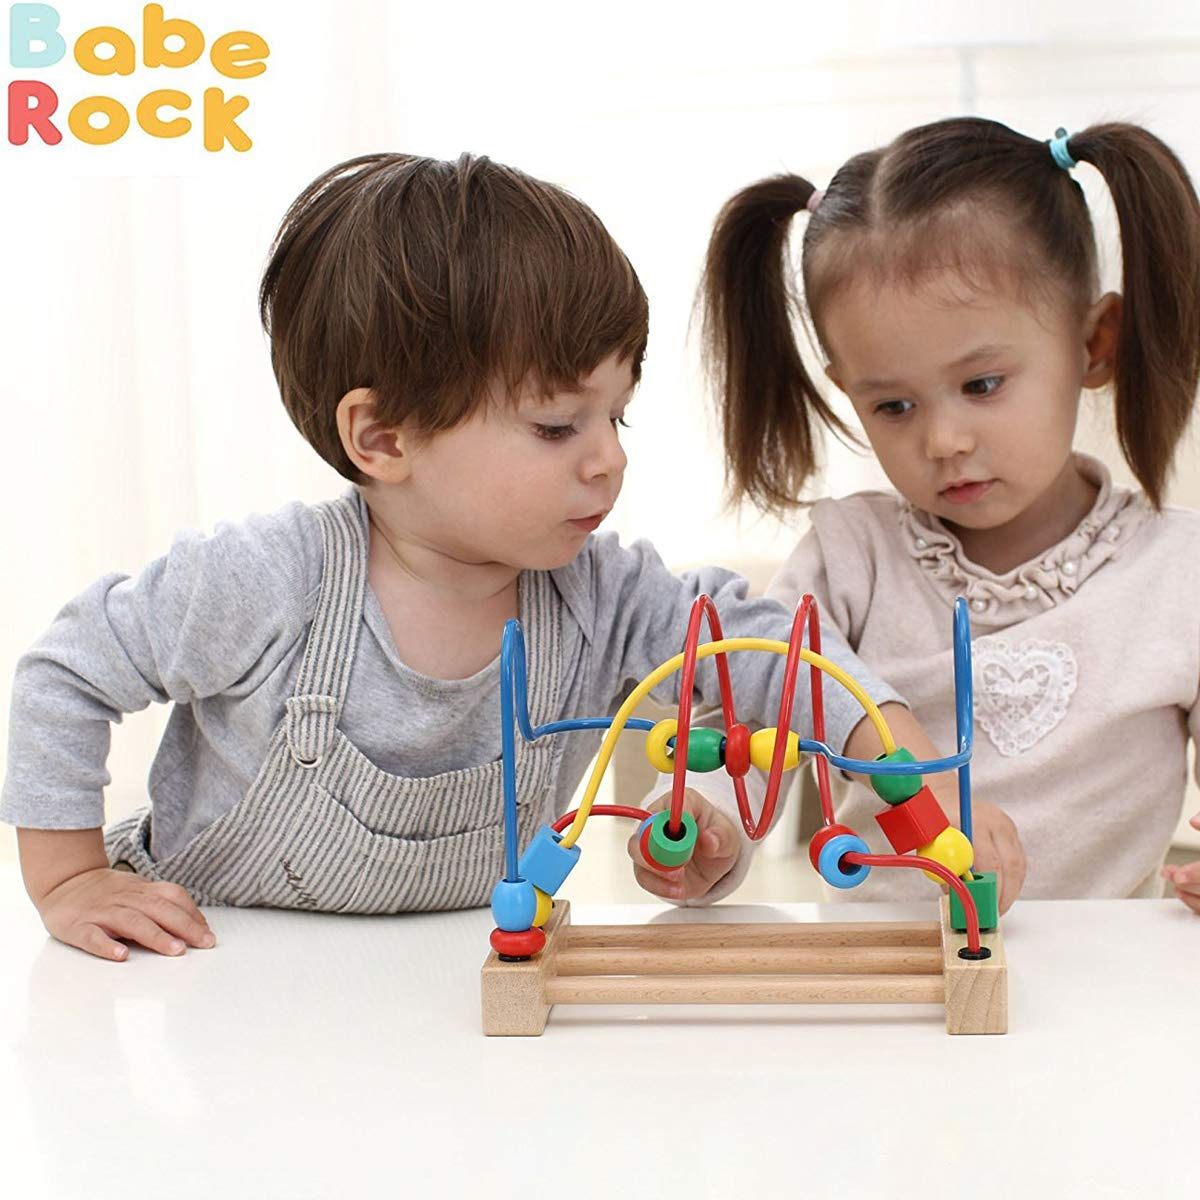 Wooden Bead Maze Game Maze Roller Coaster Educational Toys for 1 2 3 Years Old Boys Girls Gifts